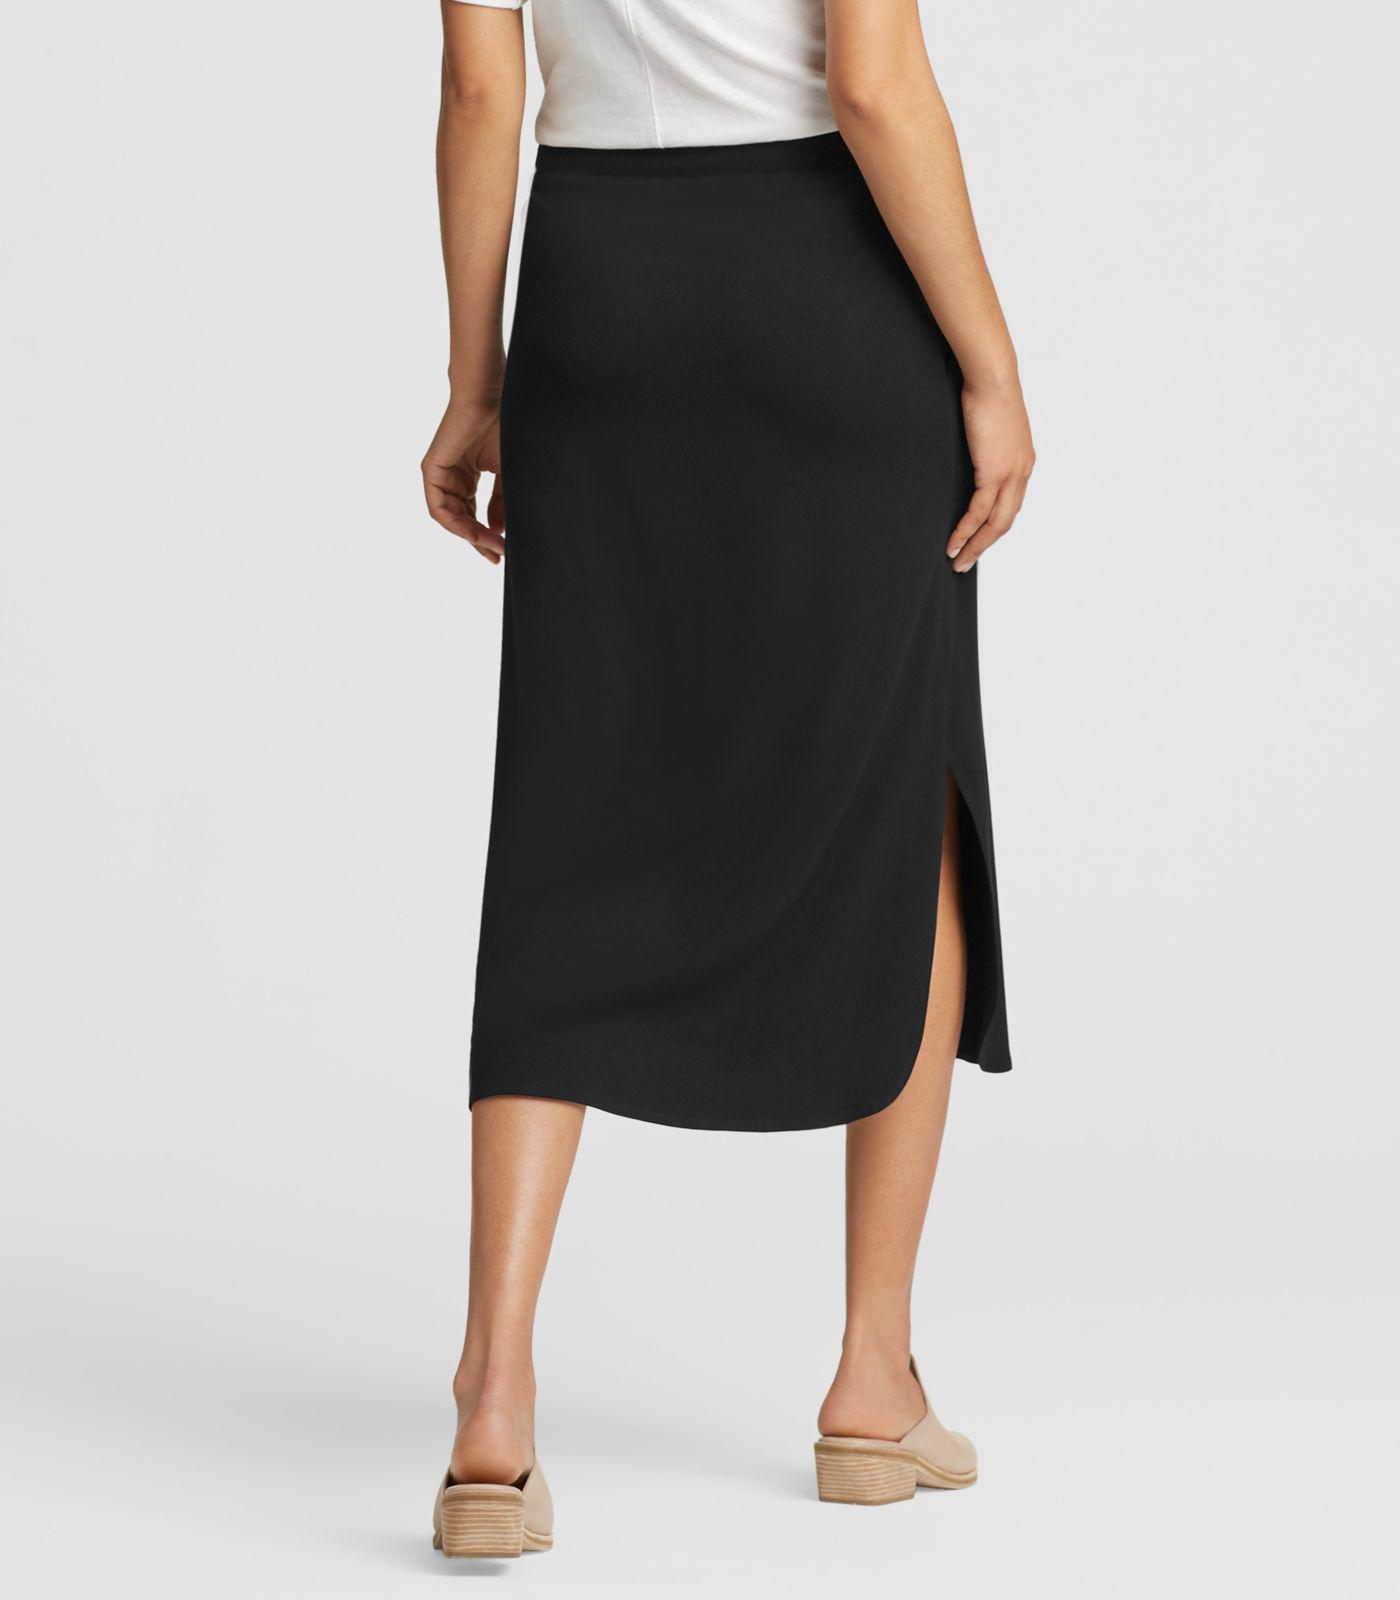 c7c294258 Gallery. Previously sold at: Eileen Fisher · Women's Metallic Skirts